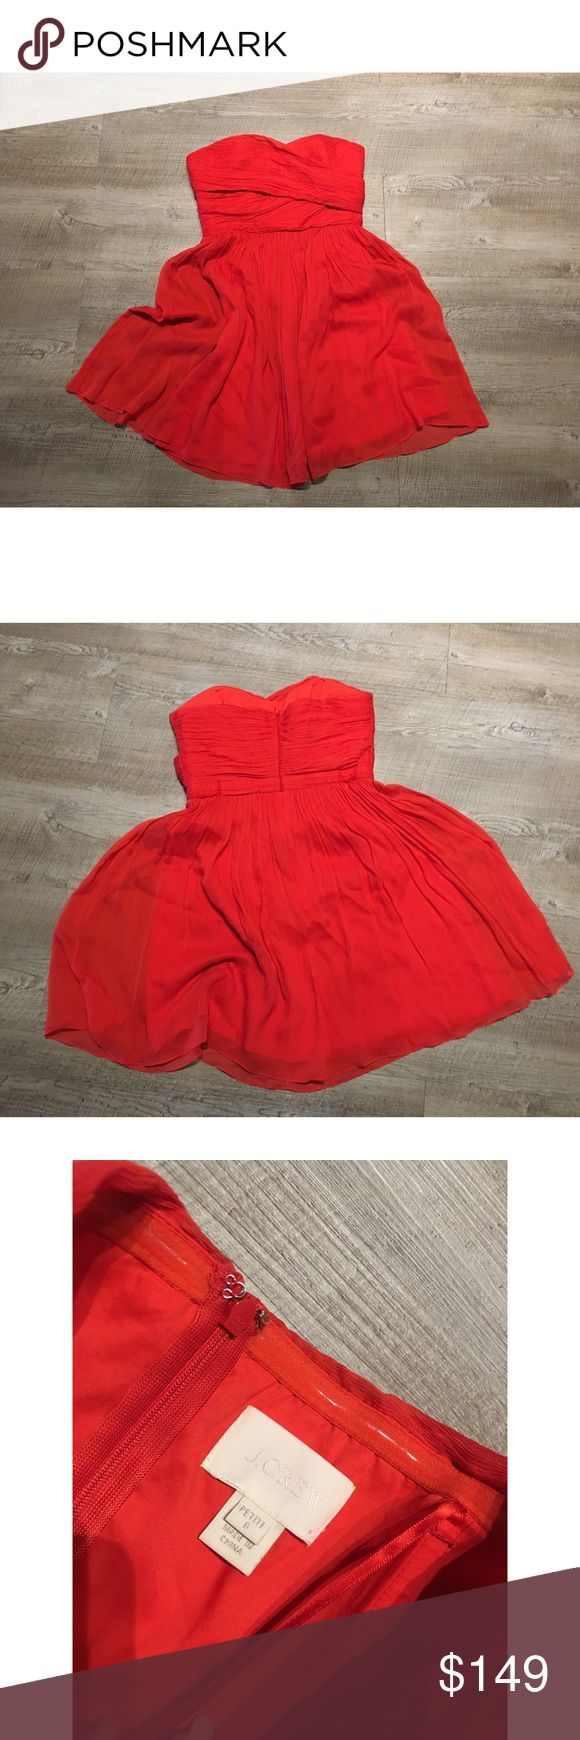 J.Crew Orange Silk Strapless mini wedding dress 6P ✨(❁´◡`❁) ωḙℓḉ✺Պḙ (❁´◡`❁)✨      🦋Description:     •Gorgeous bright Electric Orange silk fabric    •Strapless    •Above knee, mini length     L   ✨        🦋Brand: J. Crew         🦋Size: 6 P        🦋Condition: Excellent preowned shape. No holes or stains.         (please refer to all photos Don't hesitate to ask ANY and ALL question before Bidding/Buying) J. Crew Dresses Wedding